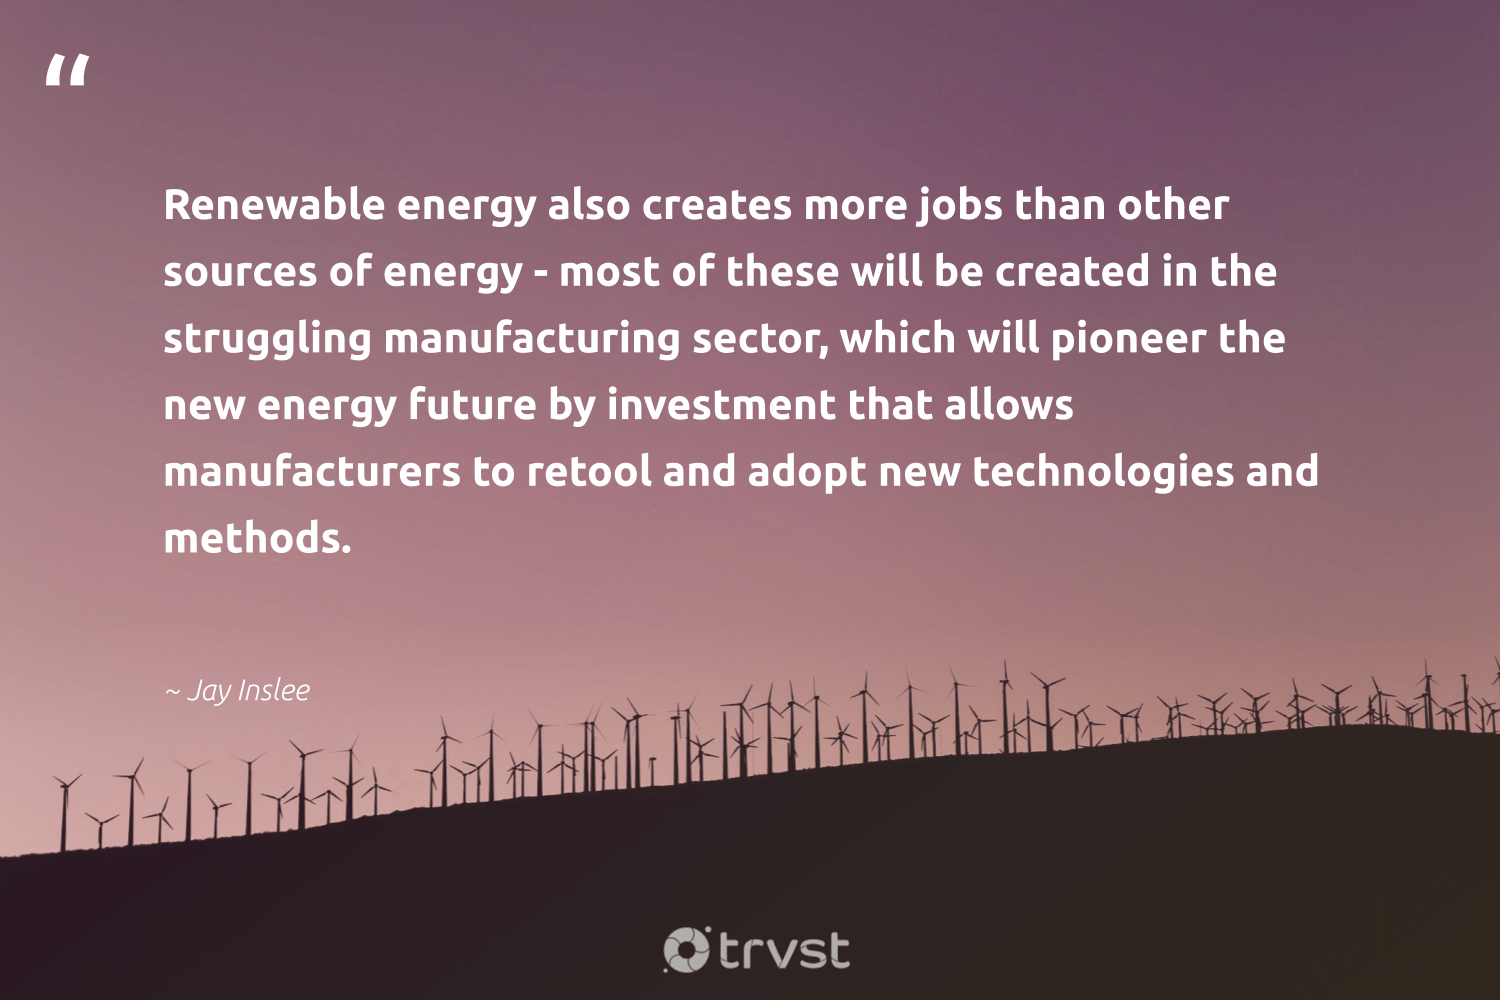 """""""Renewable energy also creates more jobs than other sources of energy - most of these will be created in the struggling manufacturing sector, which will pioneer the new energy future by investment that allows manufacturers to retool and adopt new technologies and methods.""""  - Jay Inslee #trvst #quotes #renewableenergy #energy #renewable #affordable #100percentclean #green #livegreen #dogood #cleanenergy #lowcarbon"""